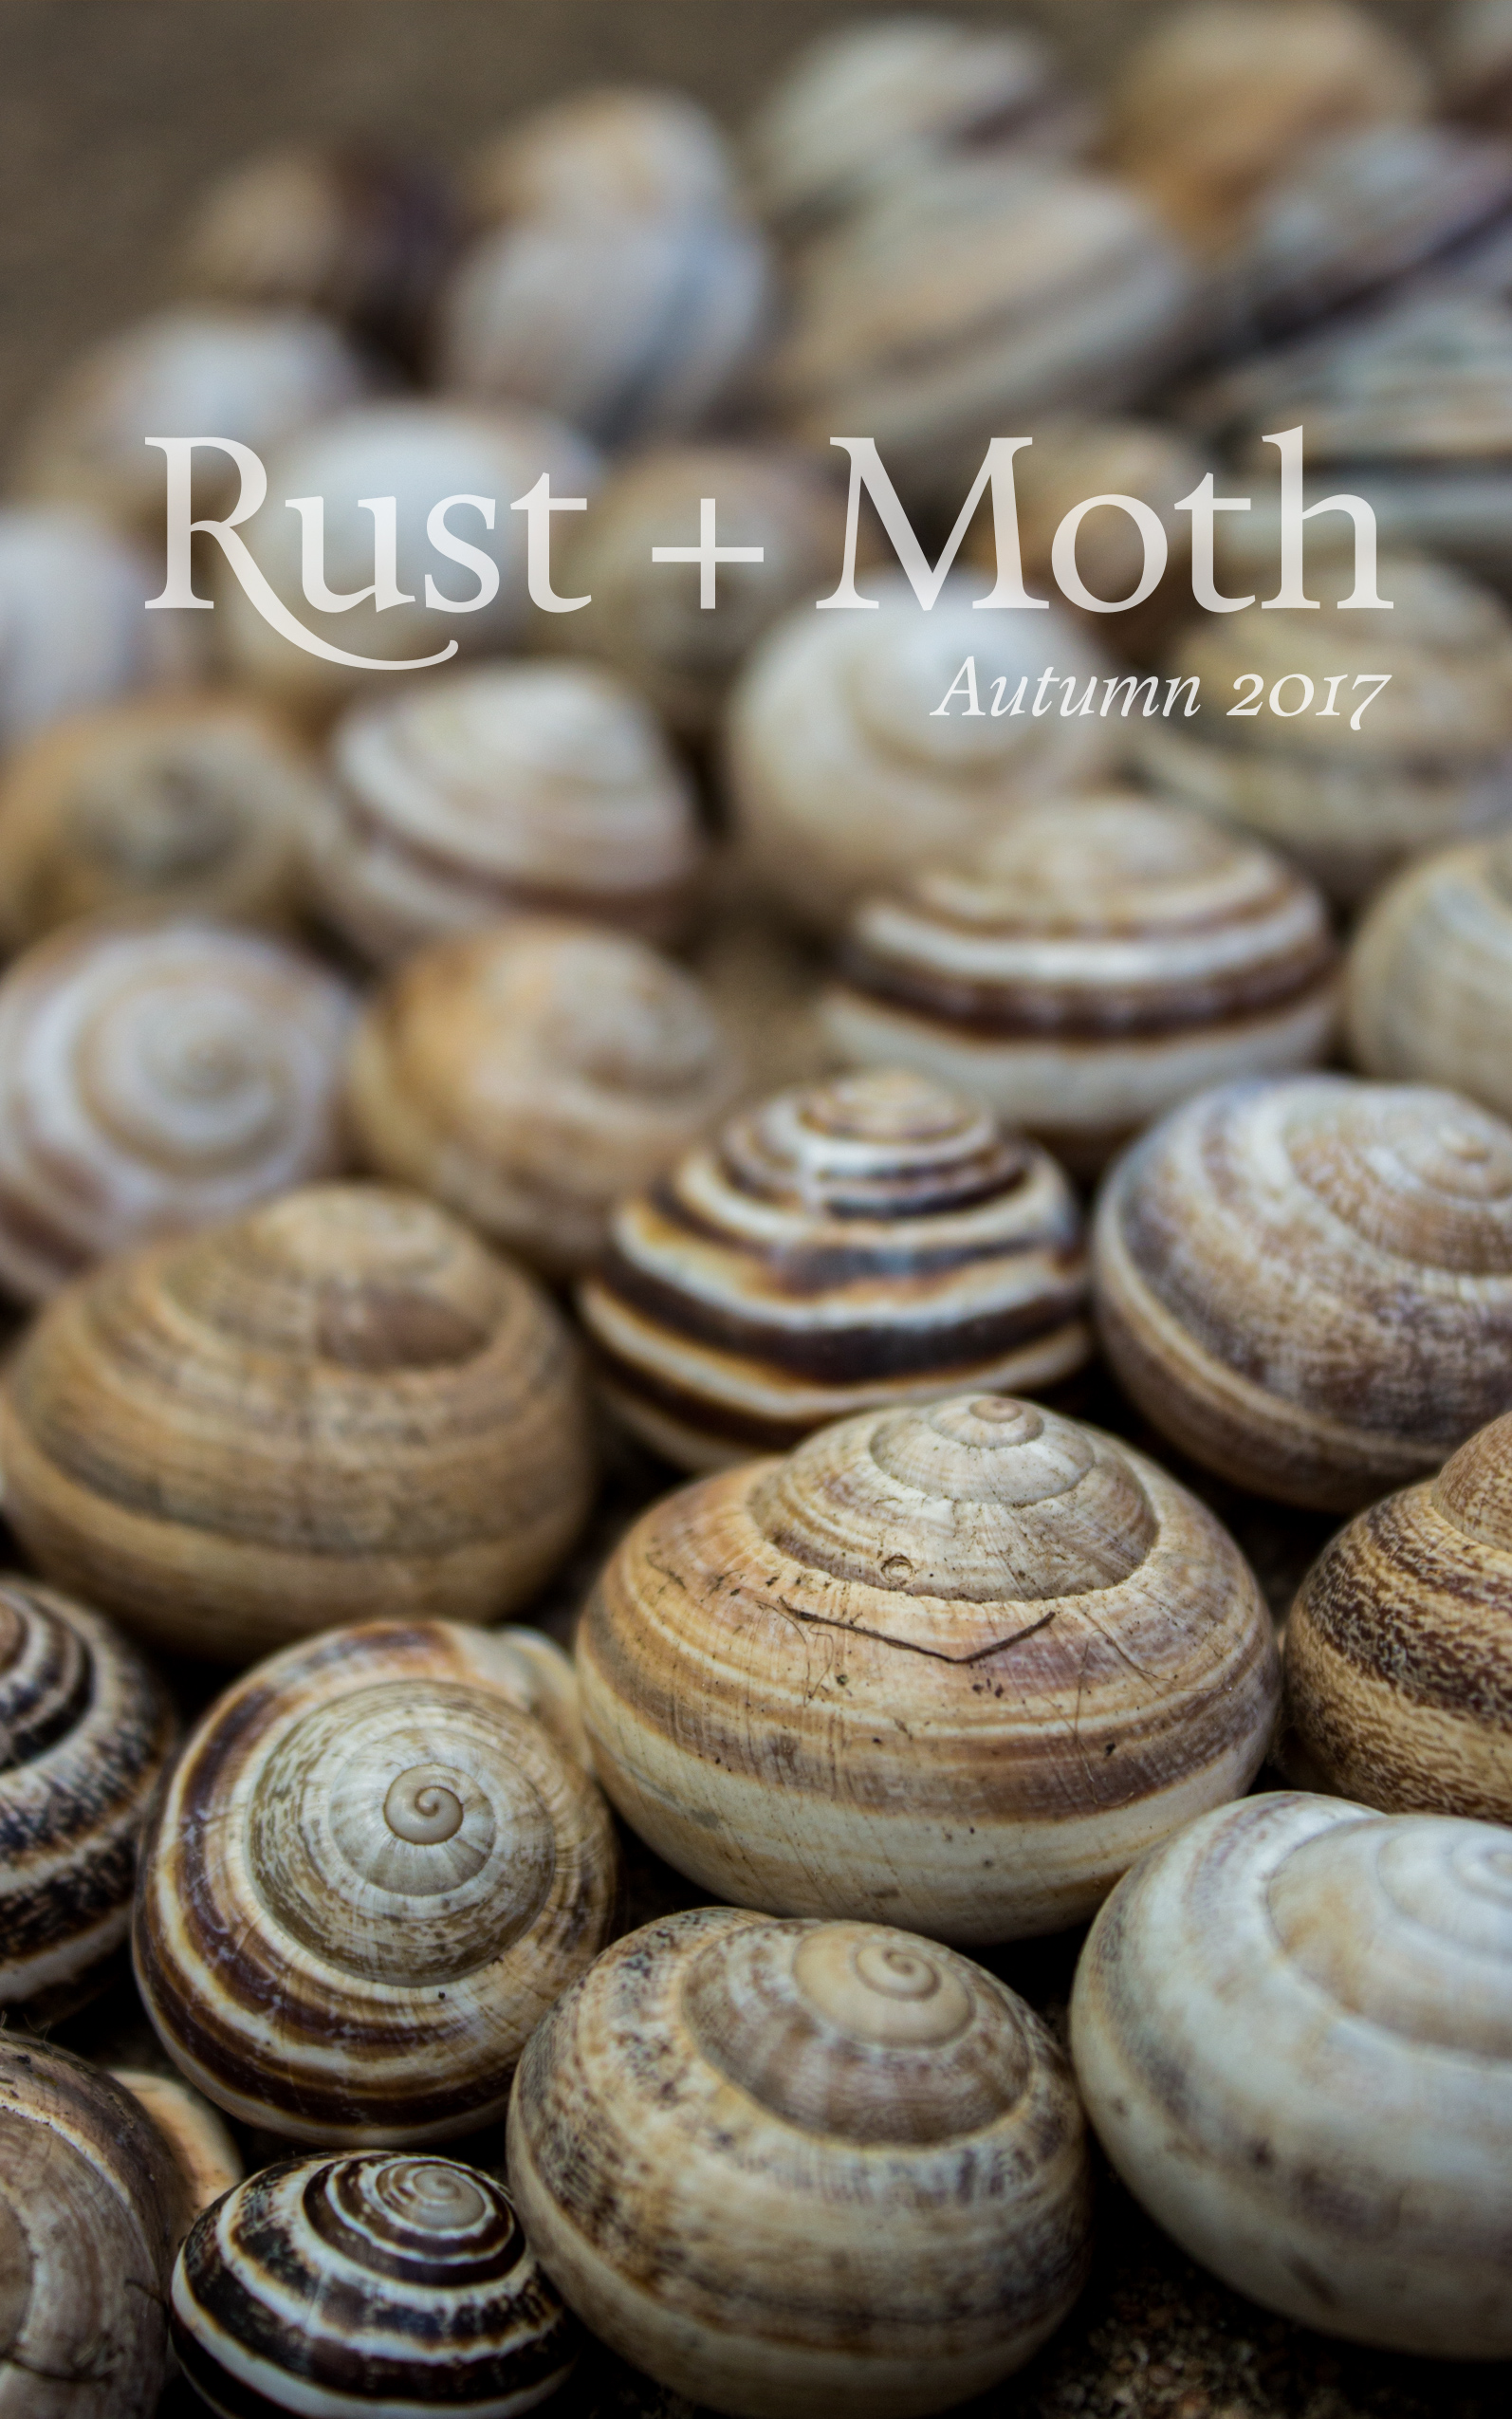 Autumn 2017 Cover